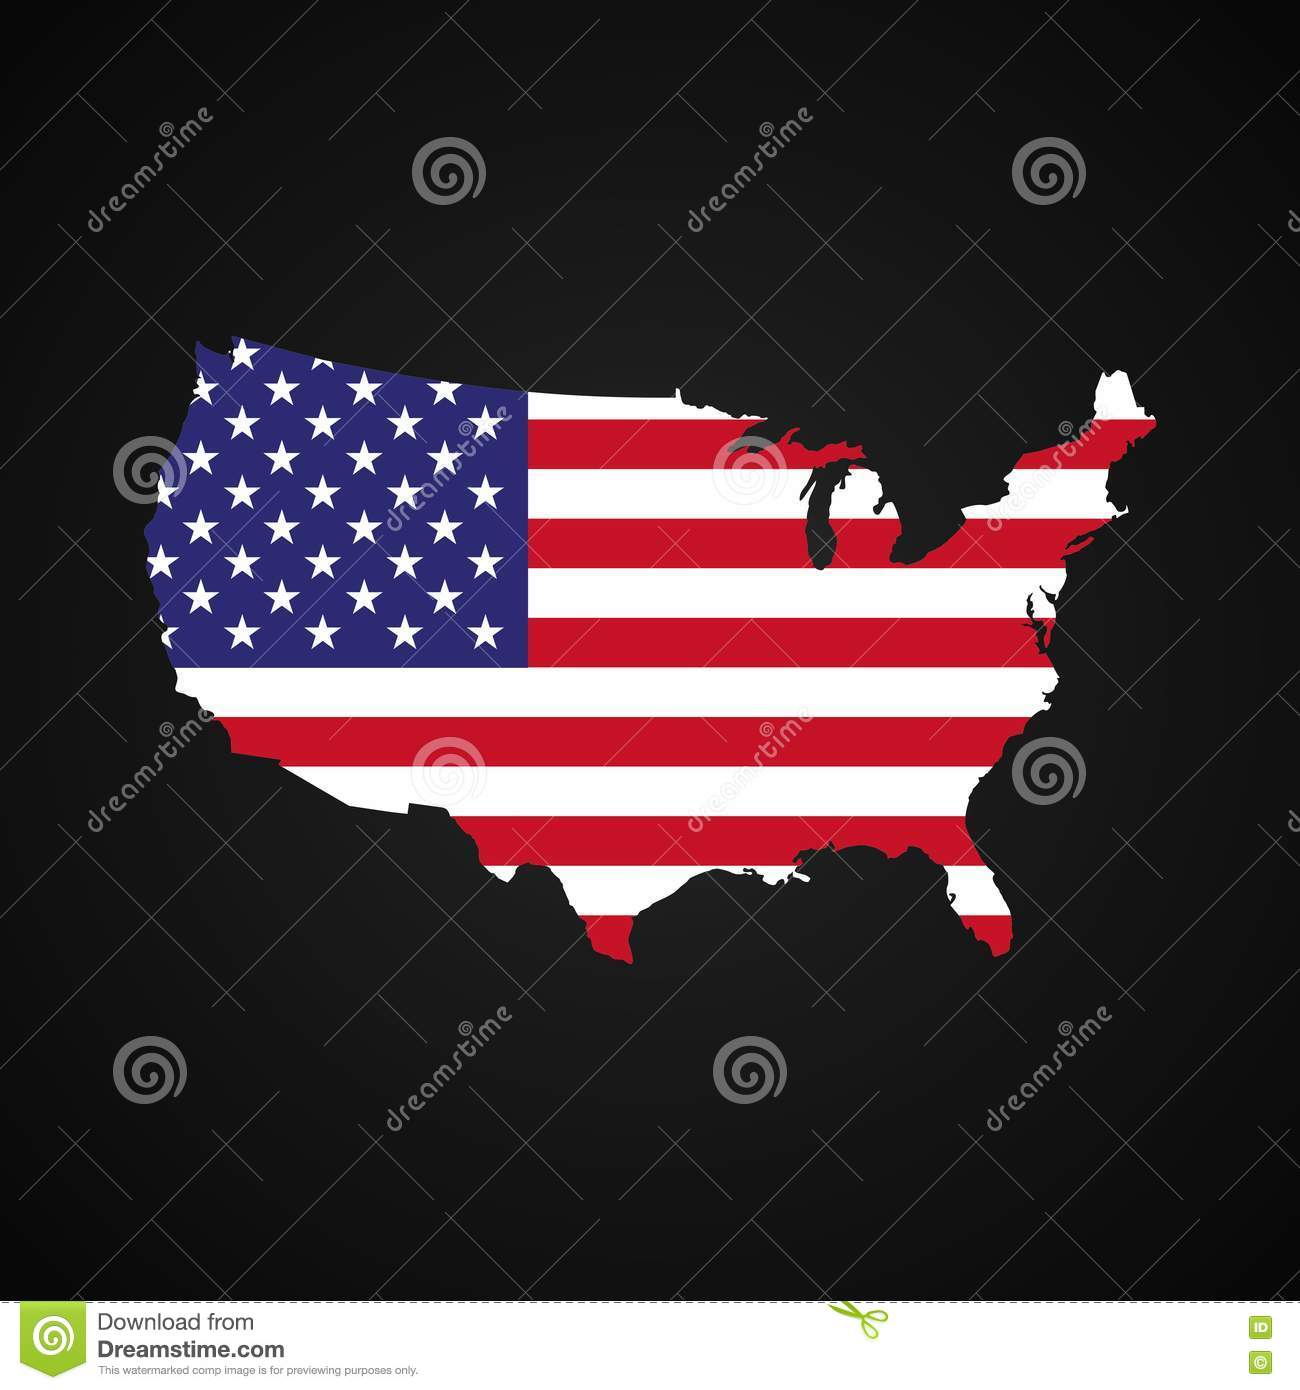 United States Of America Map With The Flag Inside Silhouette Usa - Us map dark